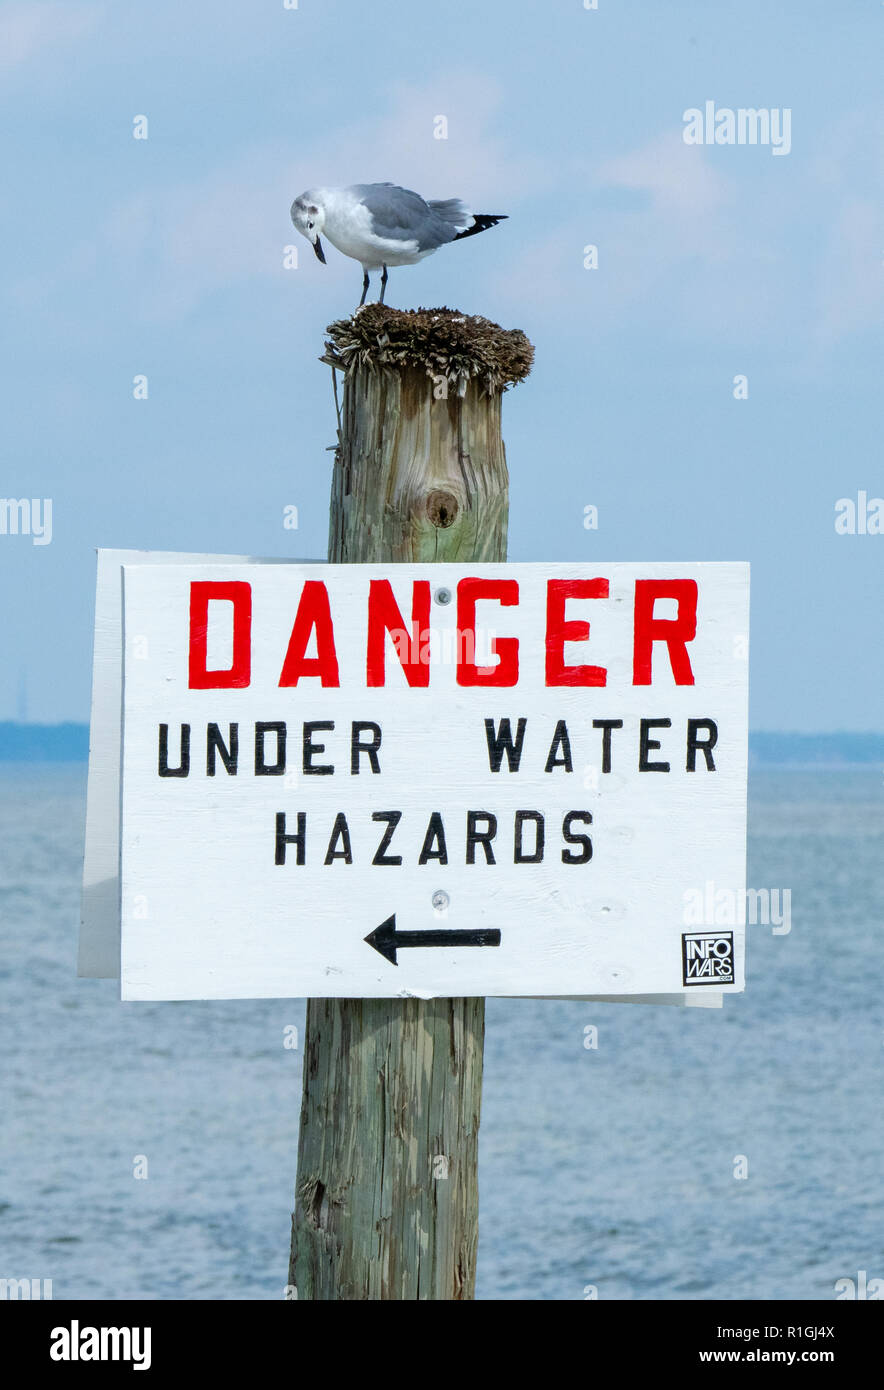 Gull looking down at an under water hazards sign on Tybee Island near Savannah on the Georgia coast of southern USA - Stock Image